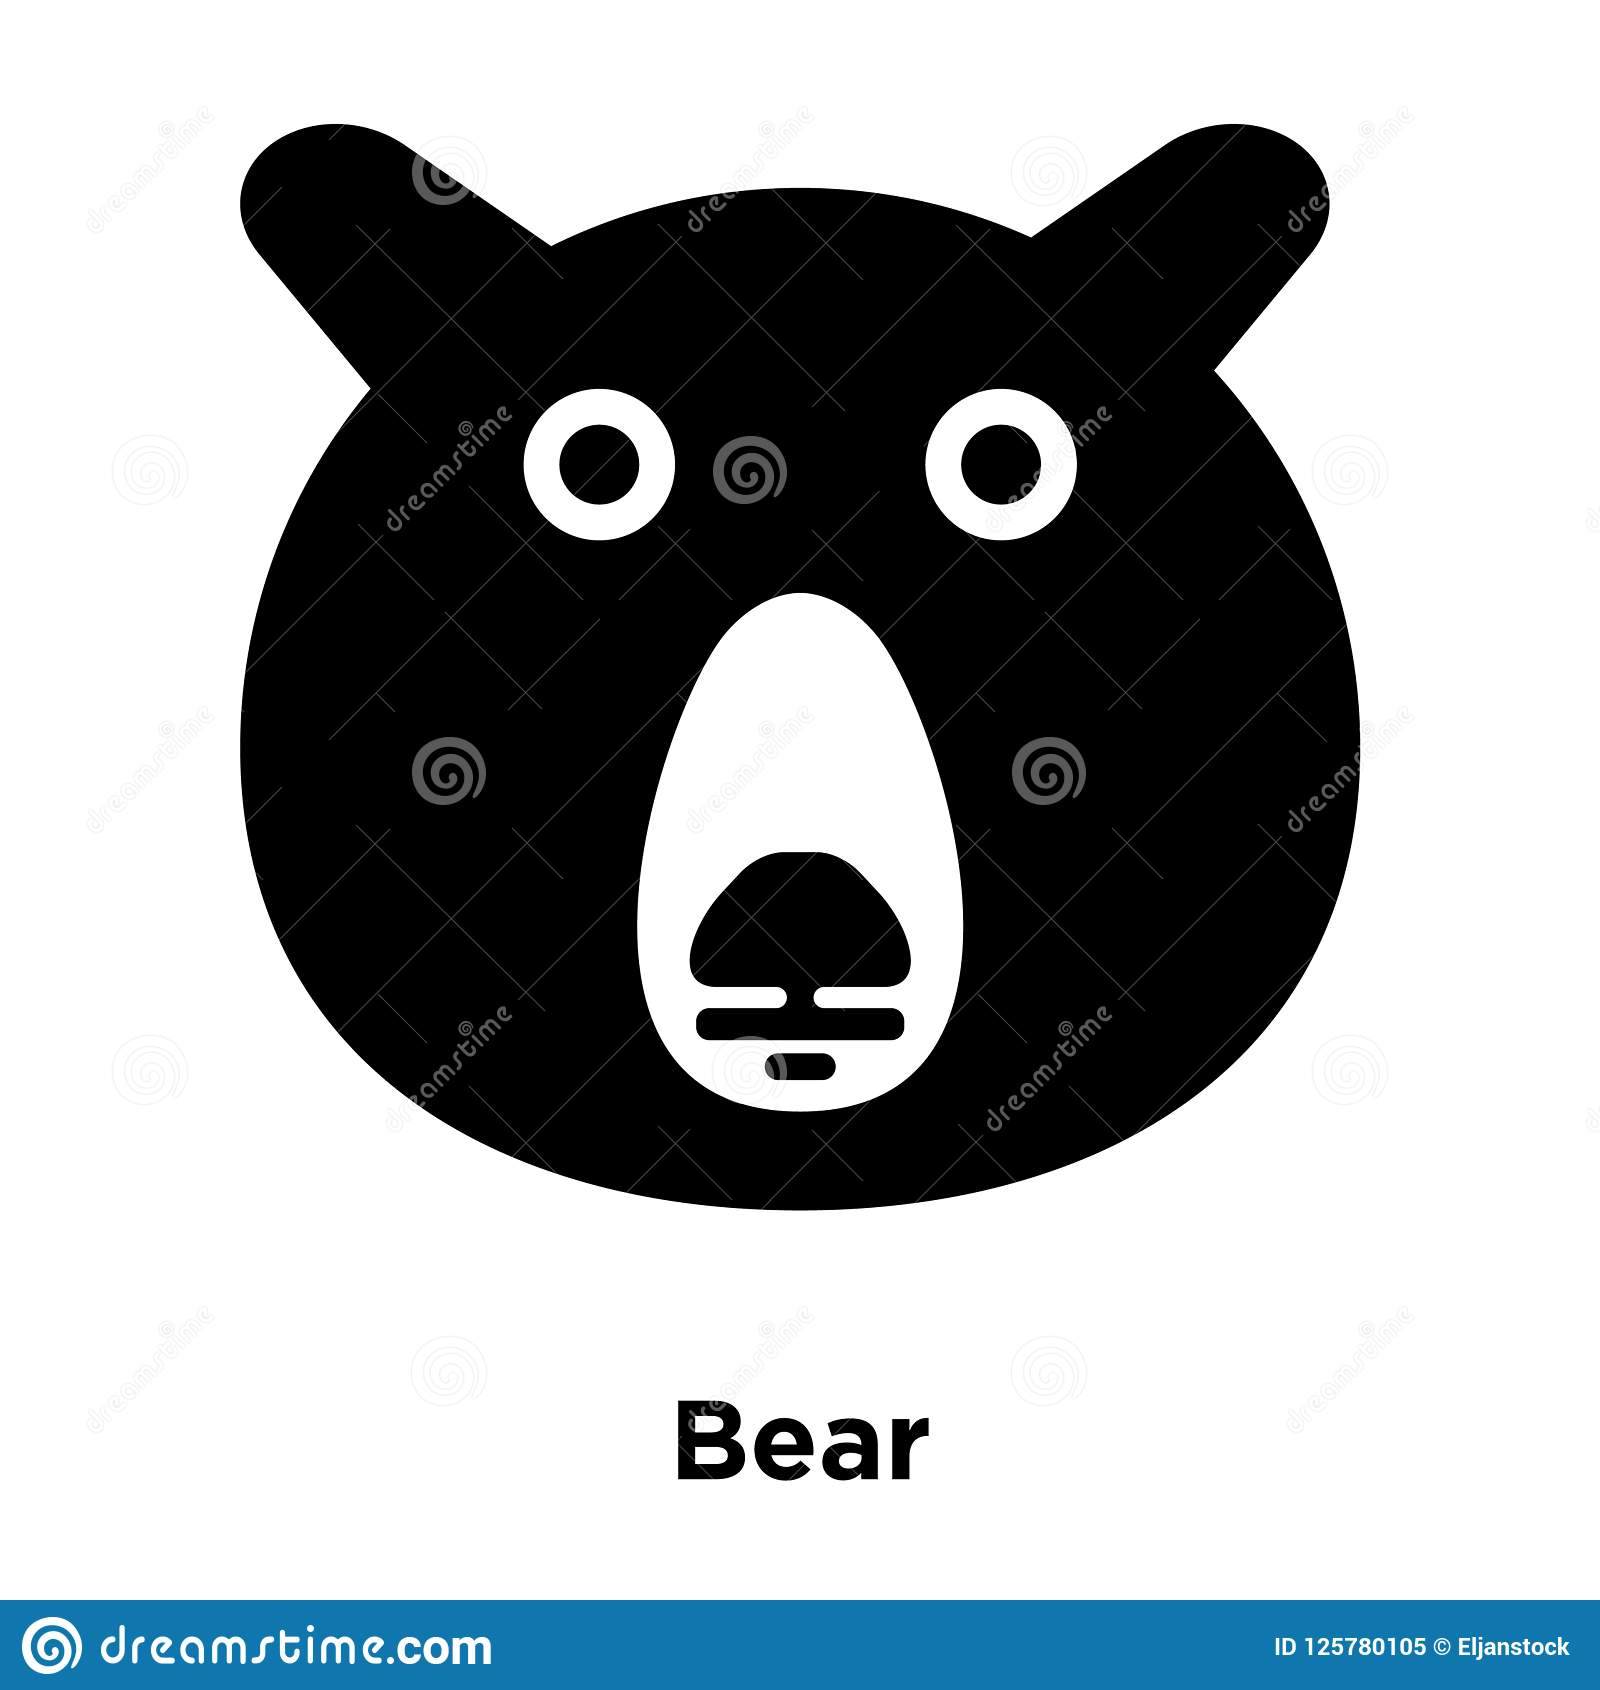 bear icon vector isolated on white background logo concept of b stock vector illustration of isolated happy 125780105 dreamstime com